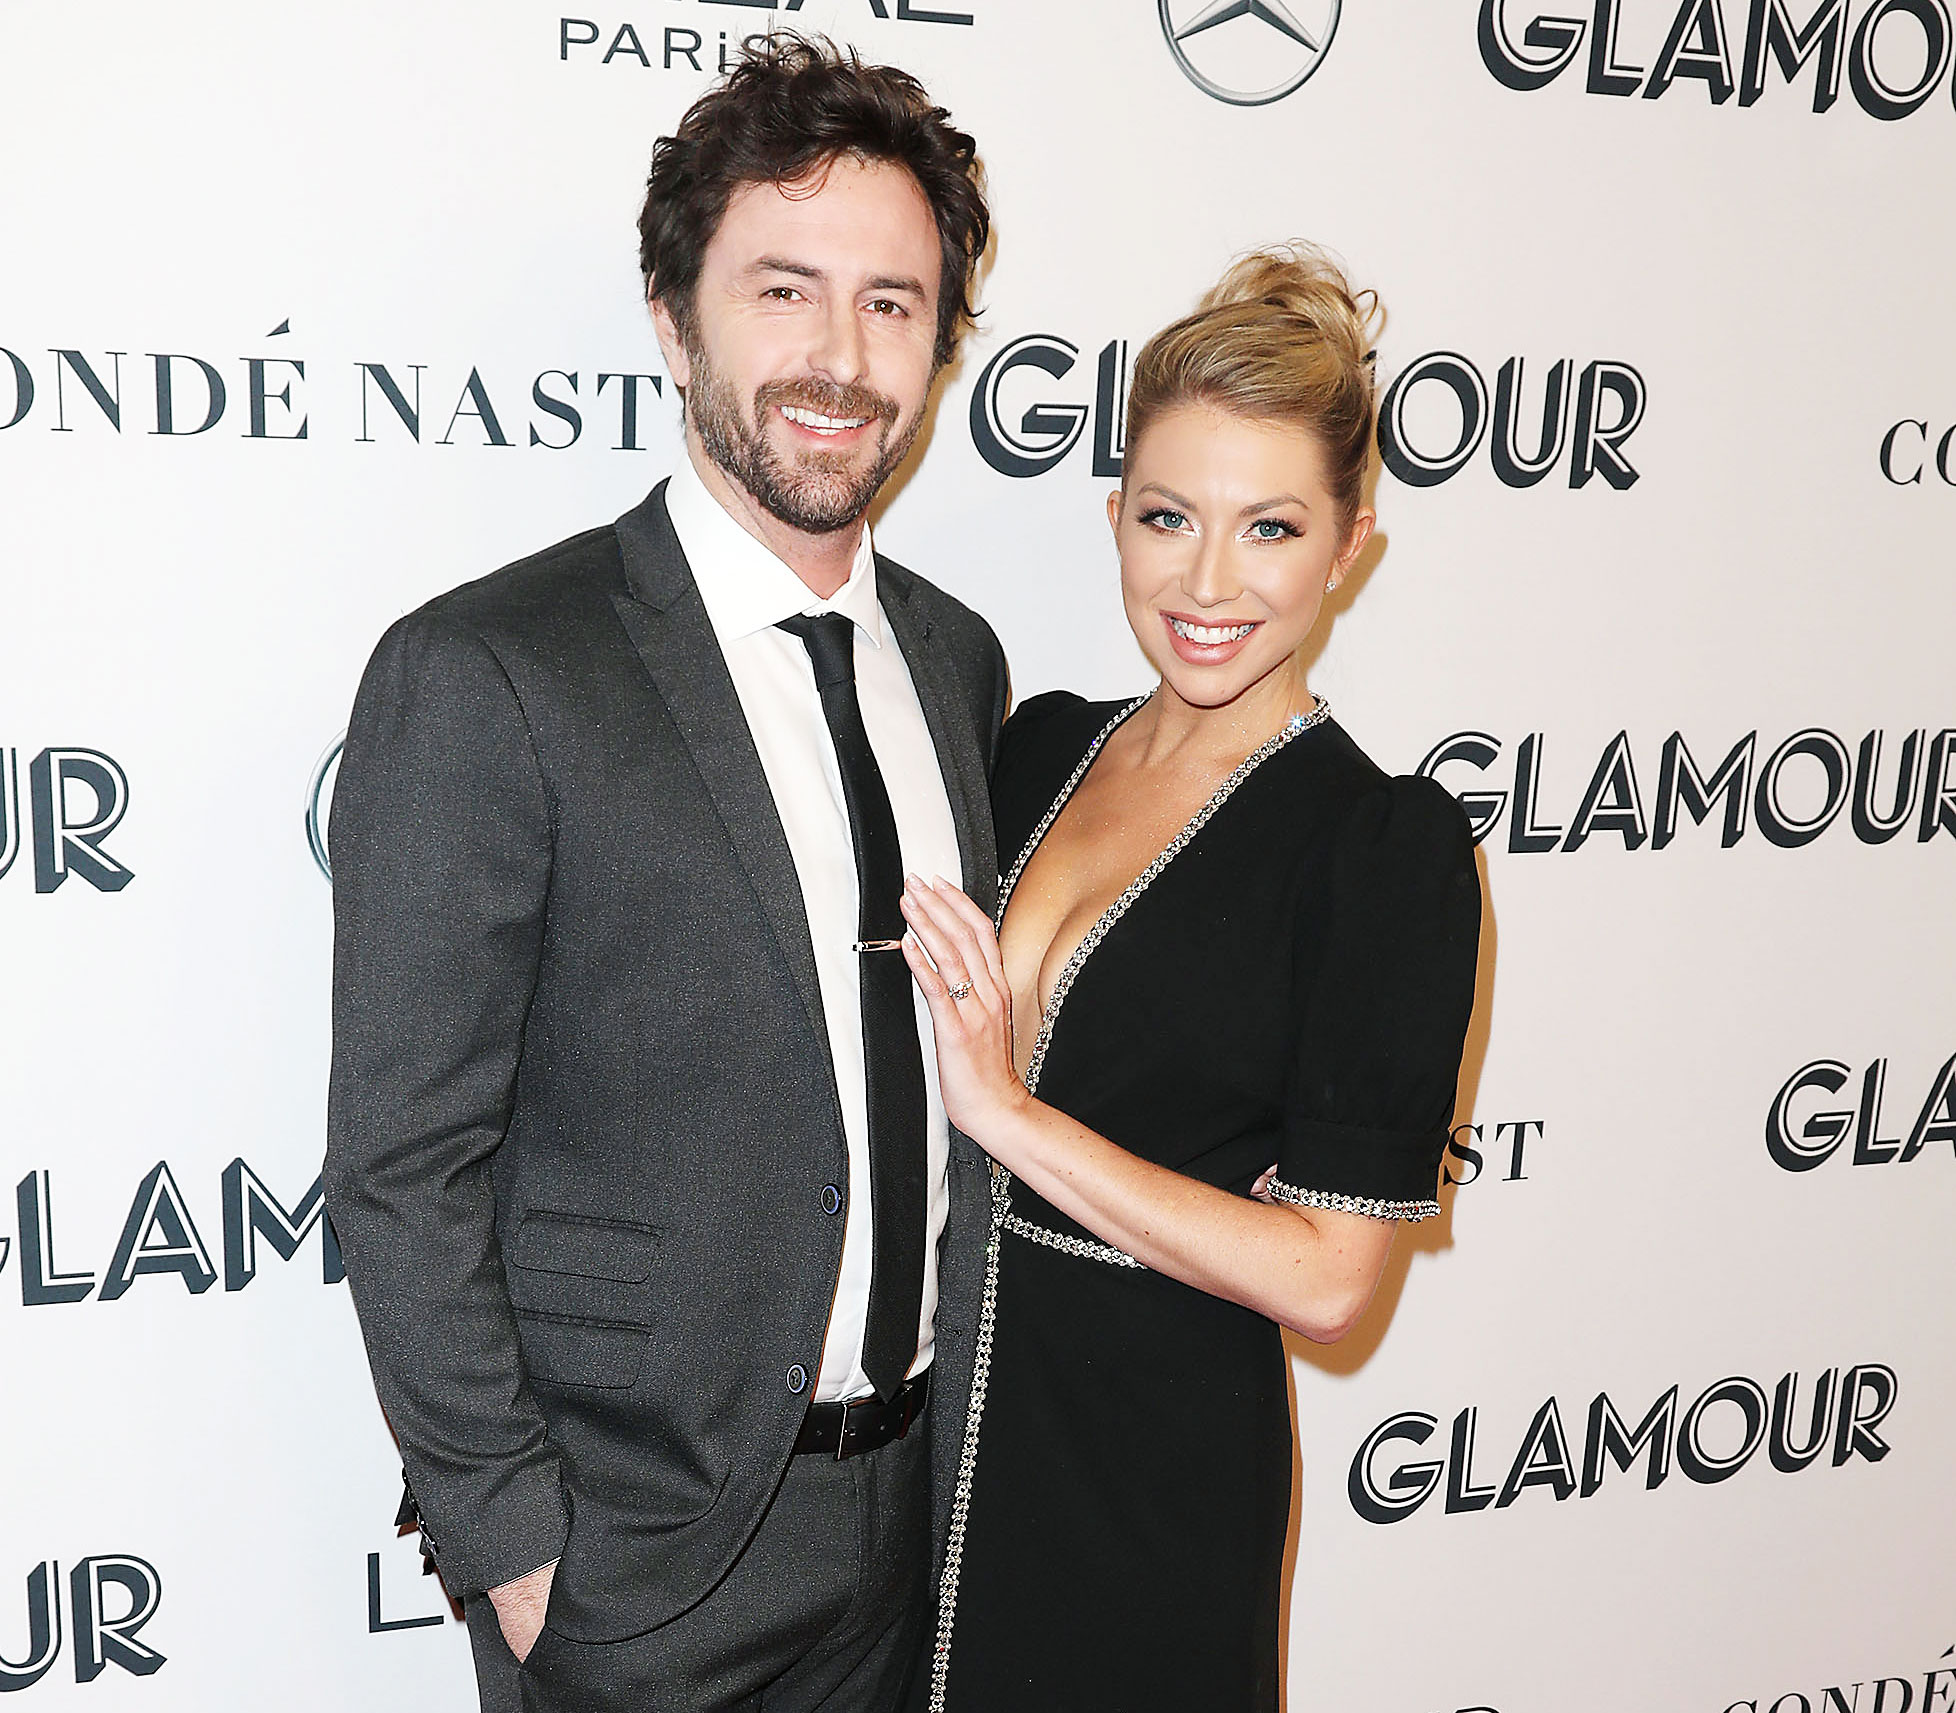 Vanderpump Rules Fans Think Stassi Schroeder and Beau Clark May Already Be Married